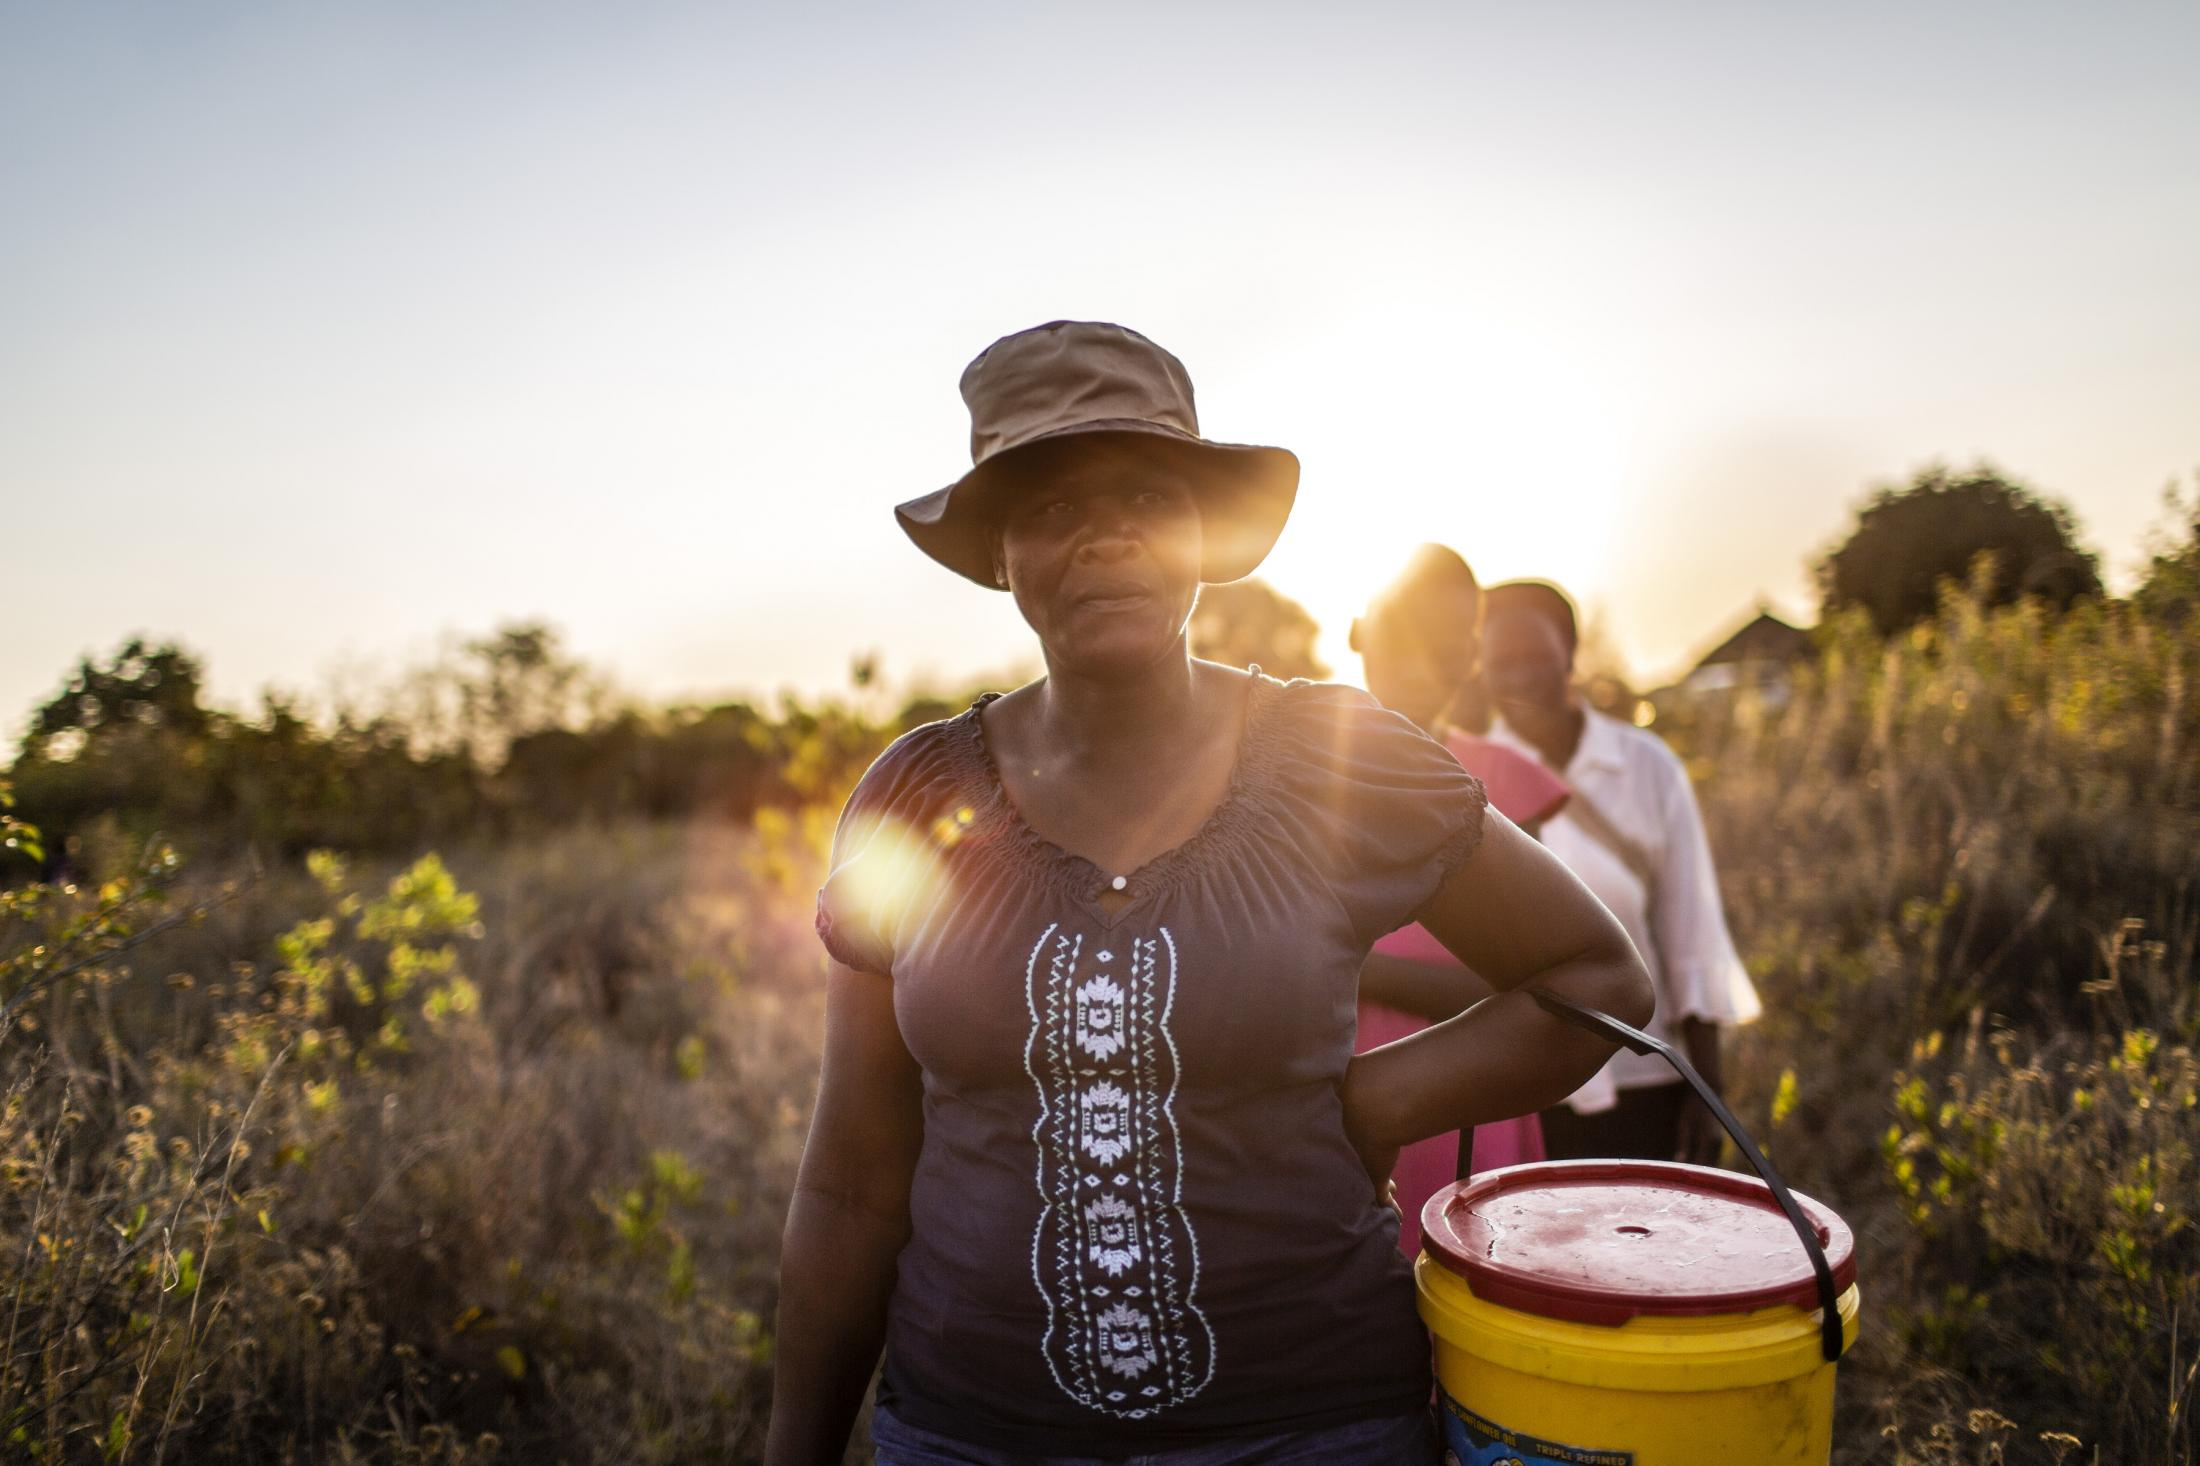 Tariro Chinamo (43) (L), walks with her daughter, Lana Fariva (14) and her mother-in-law Christina Chamissa (58) to fetch water in Masvingo, Zimbabwe on October 07, 2019. The family has no electricity or water at home and have to walk for over a km to a spring to fetch water everyday. They have no choice but to use this for drinking and cooking as well, so it will be boiled.